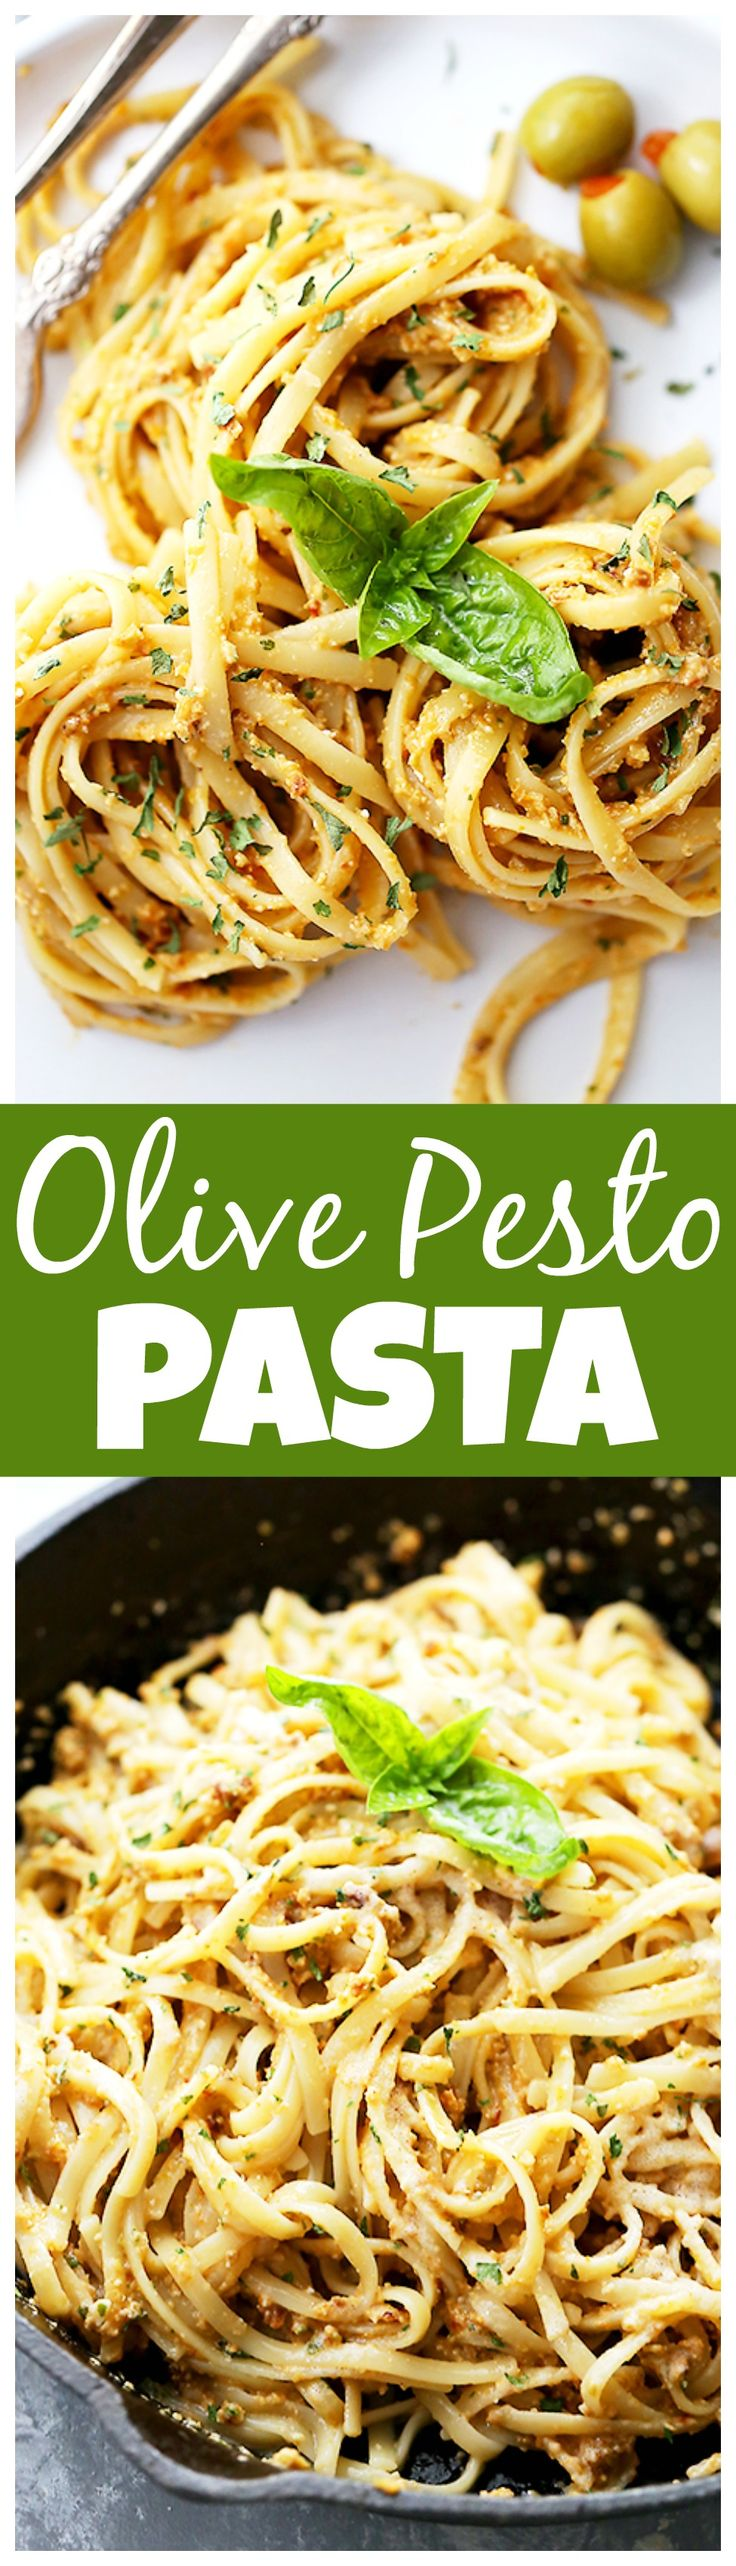 Olive Pesto Pasta - Quick and easy pasta dinner tossed in a homemade olive pesto made with pimiento-stuffed olives, fresh basil, and sun-dried tomatoes